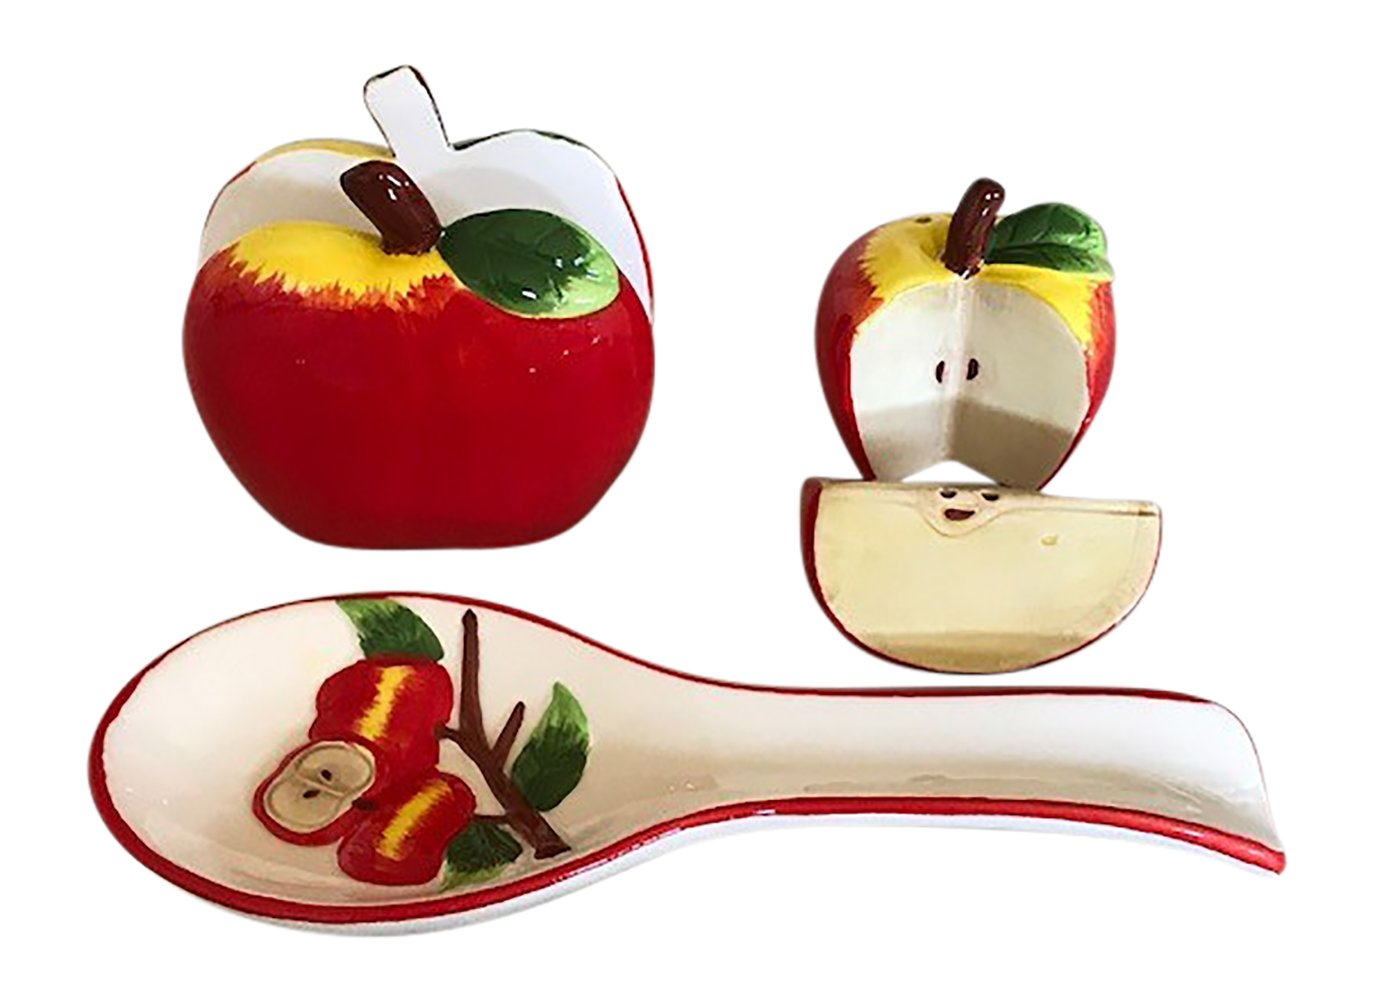 Apple Kitchen Decor Collection, Salt and Pepper Shaker Set, Spoon